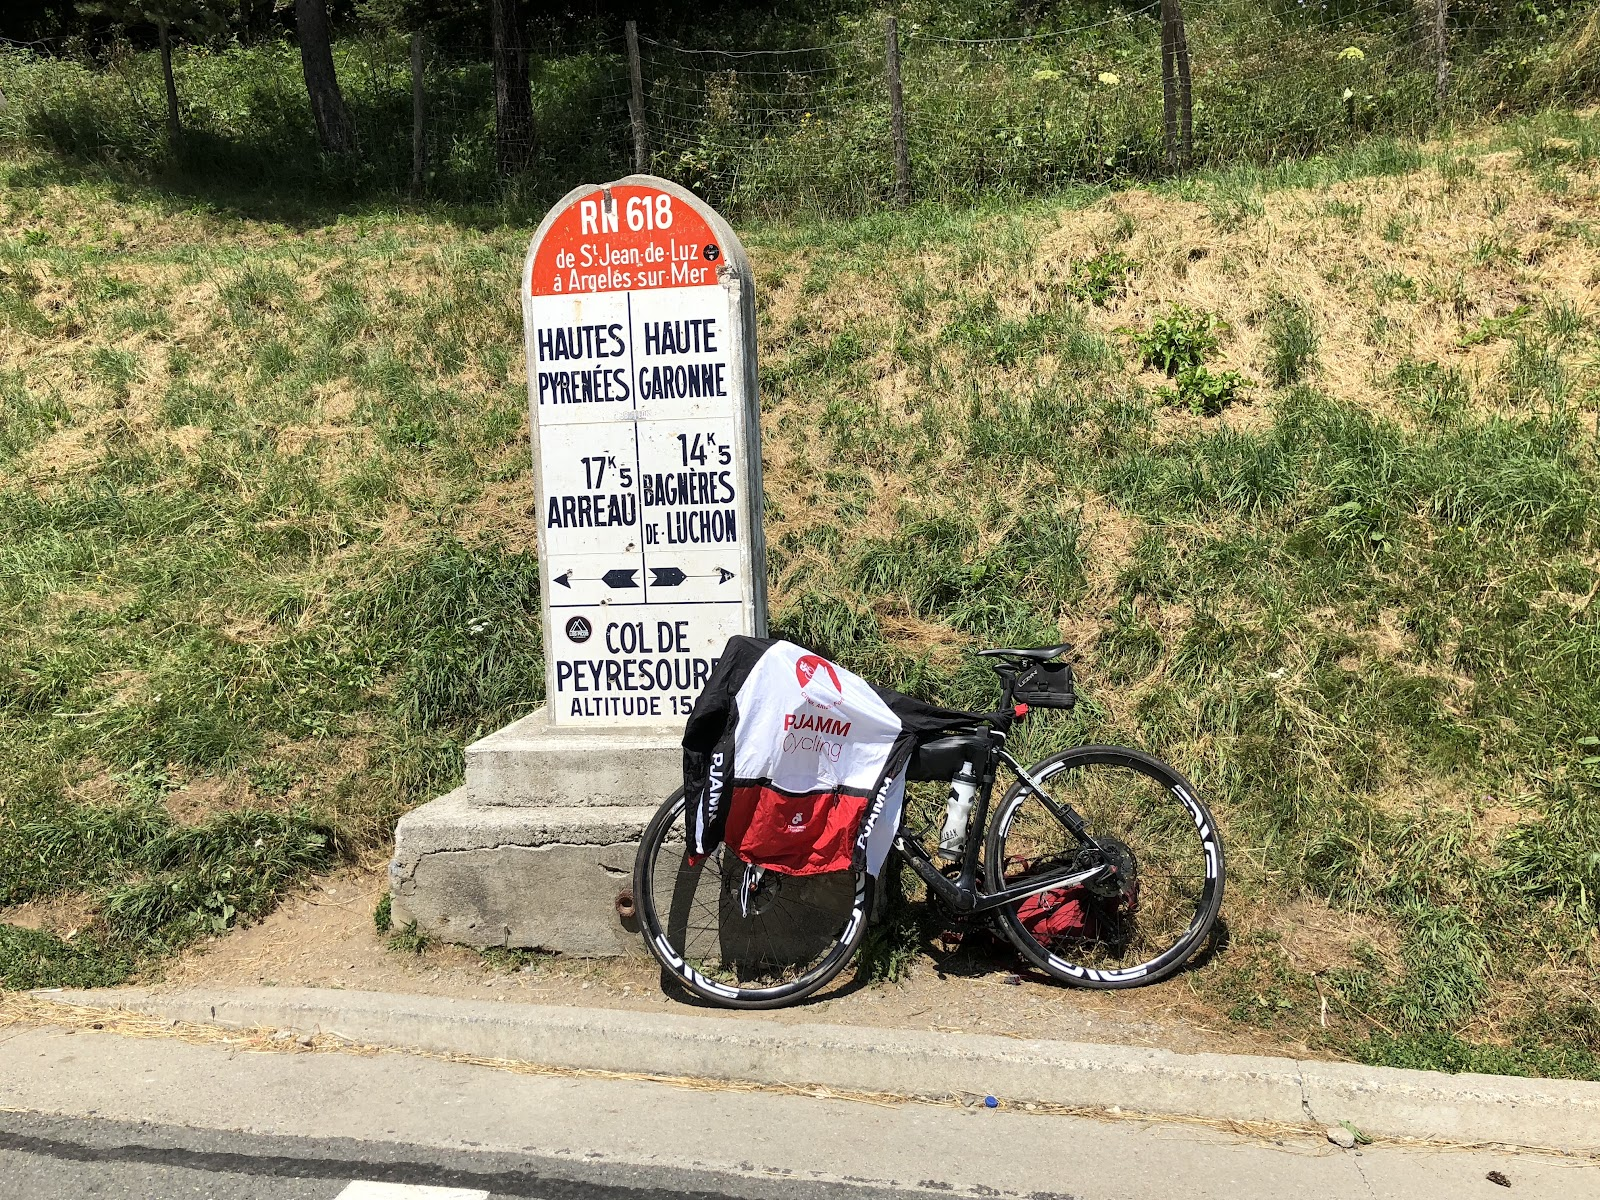 Best bike climb around Bagnere de-Luchon - col sign and bike